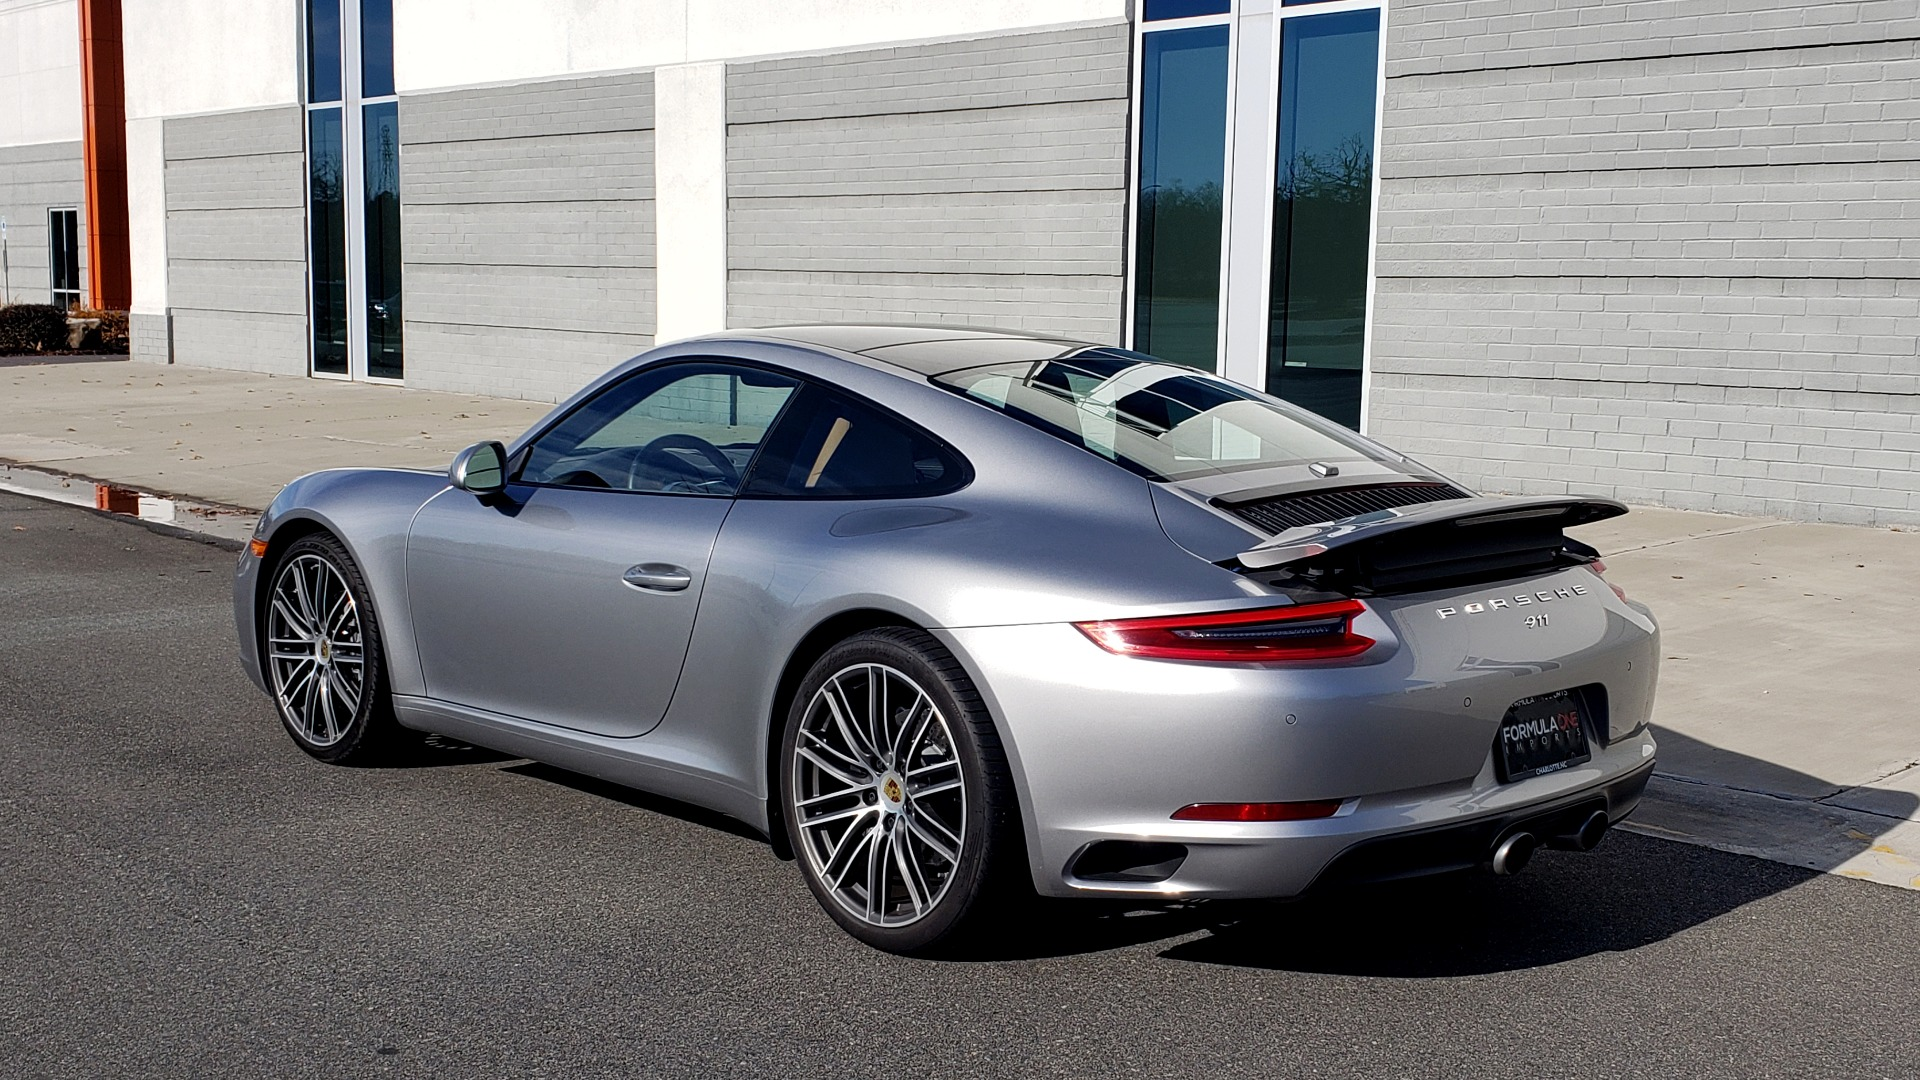 Used 2017 Porsche 911 CARRERA COUPE / 3.0L / 7-SPD MAN / NAV / PDLS / SUNROOF / REARVIEW for sale Sold at Formula Imports in Charlotte NC 28227 5